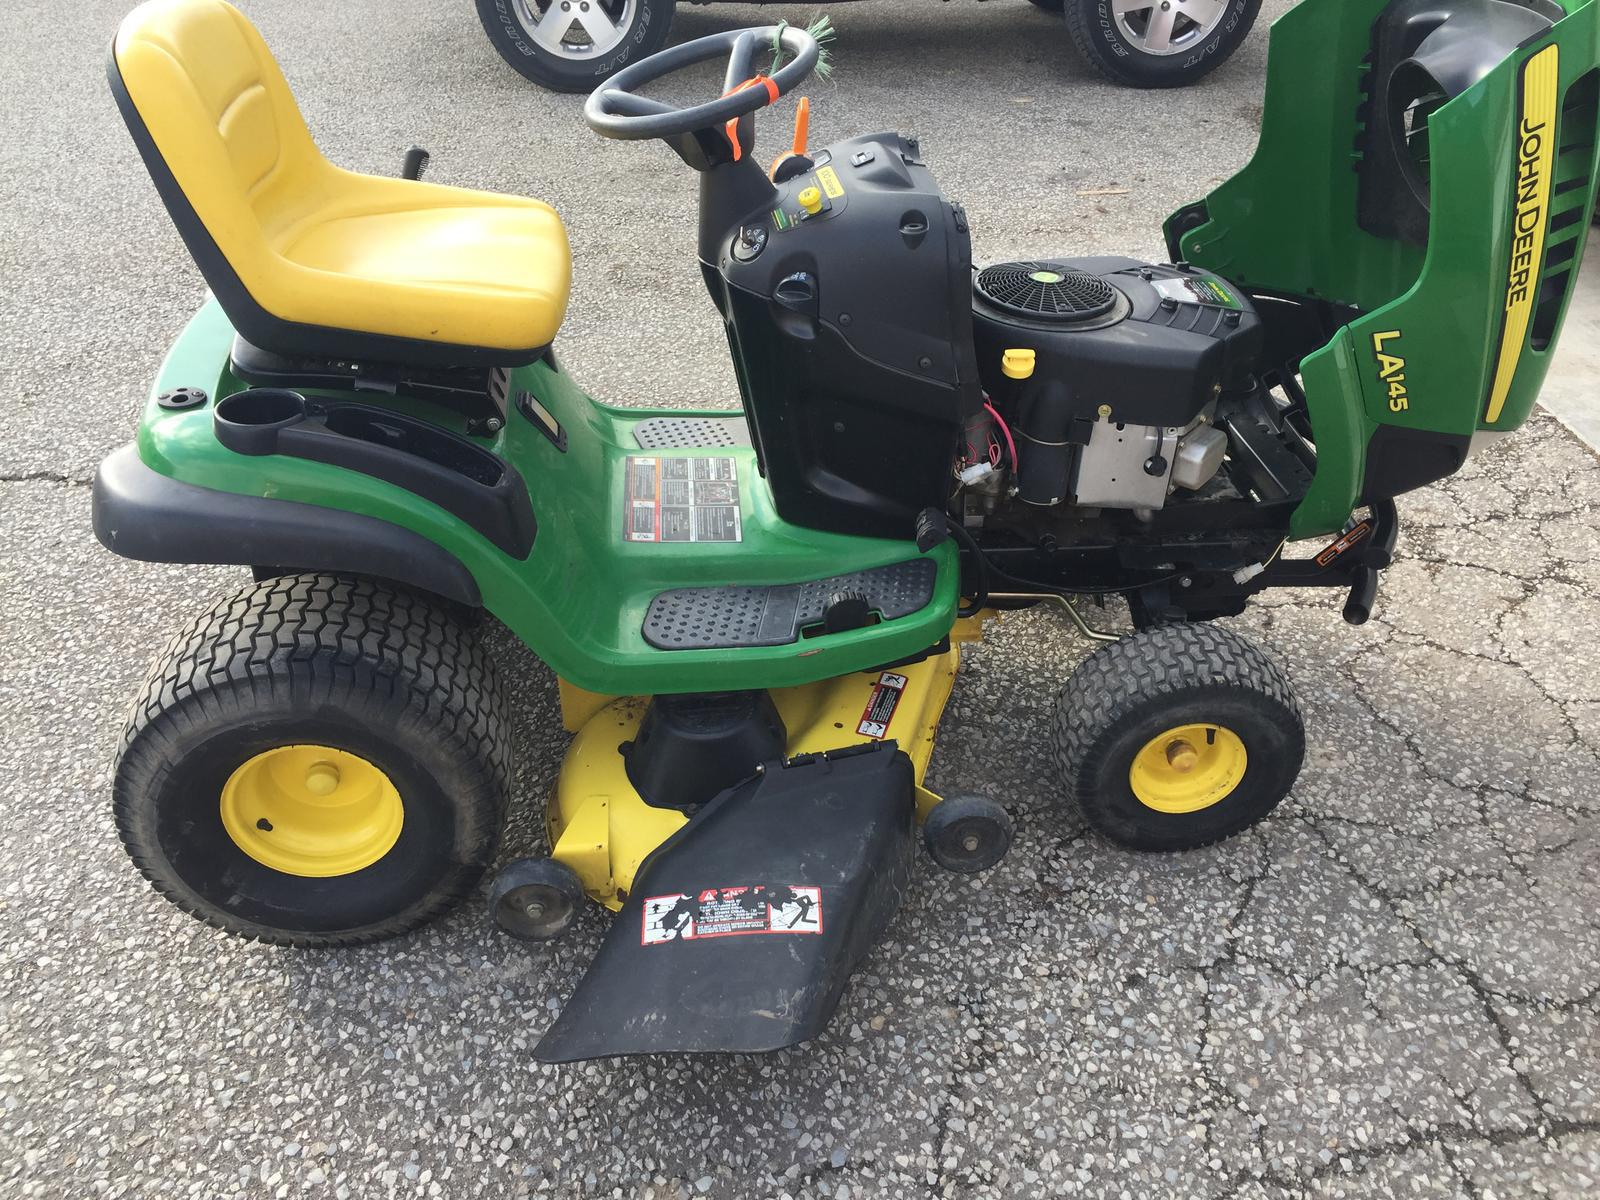 2010 John Deere LA145 Lawn Tractor for sale in Lebanon, IN